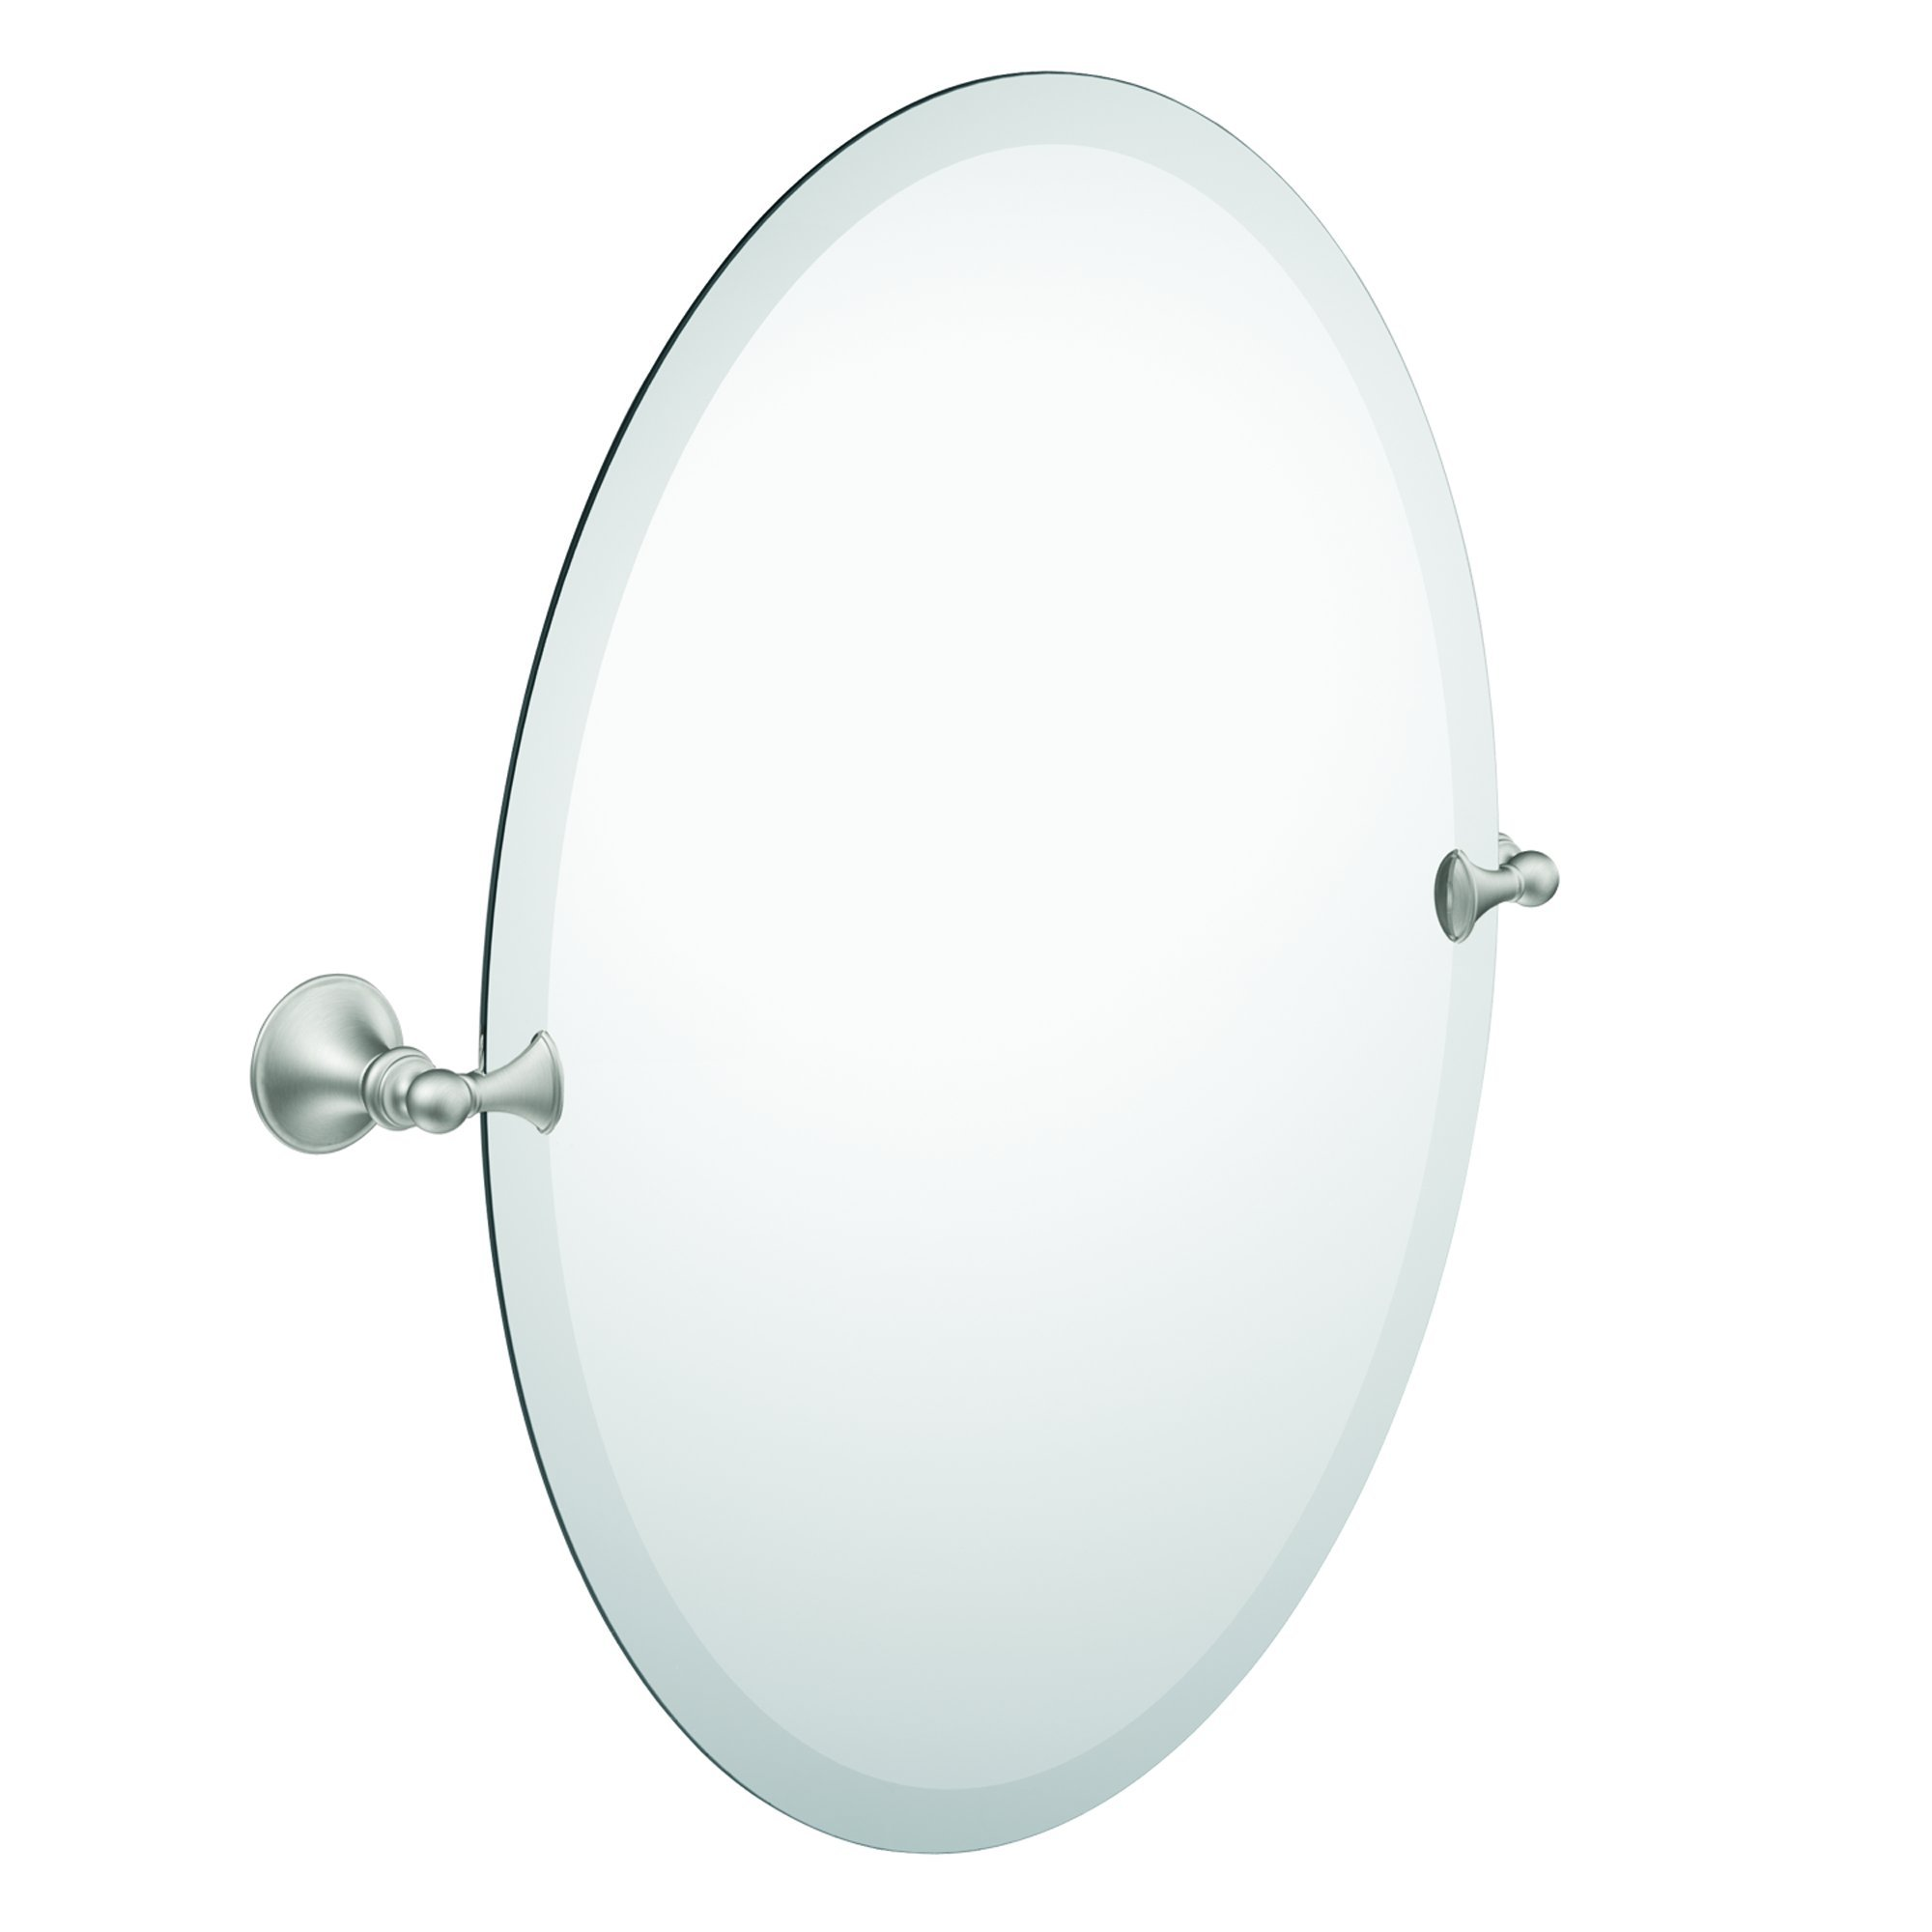 Moen DN2692BN Glenshire Bathroom Oval Tilting Mirror, Brushed Nickel by Moen